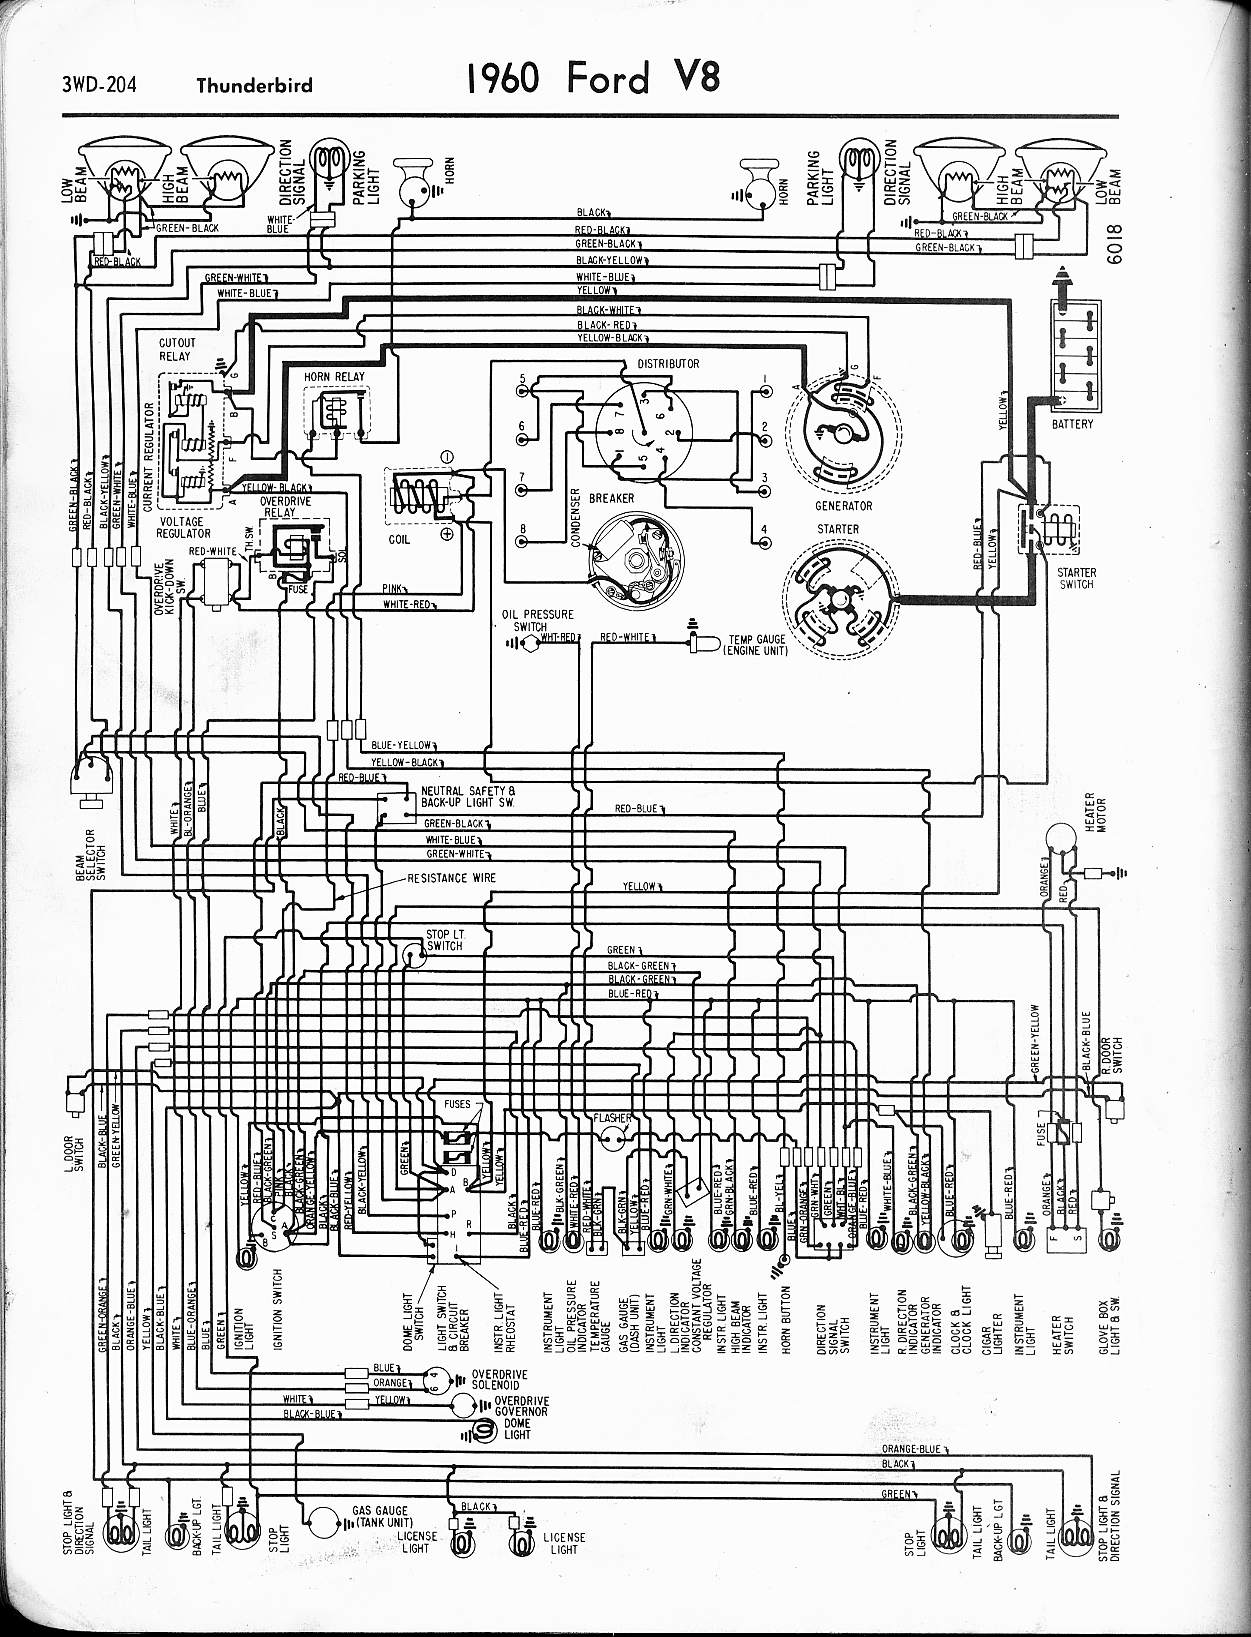 1968 Ford F 250 Starter Wiring Diagram Reveolution Of 2001 F250 Parts Schematic Galaxie Data Schema Rh Site De Joueurs Com